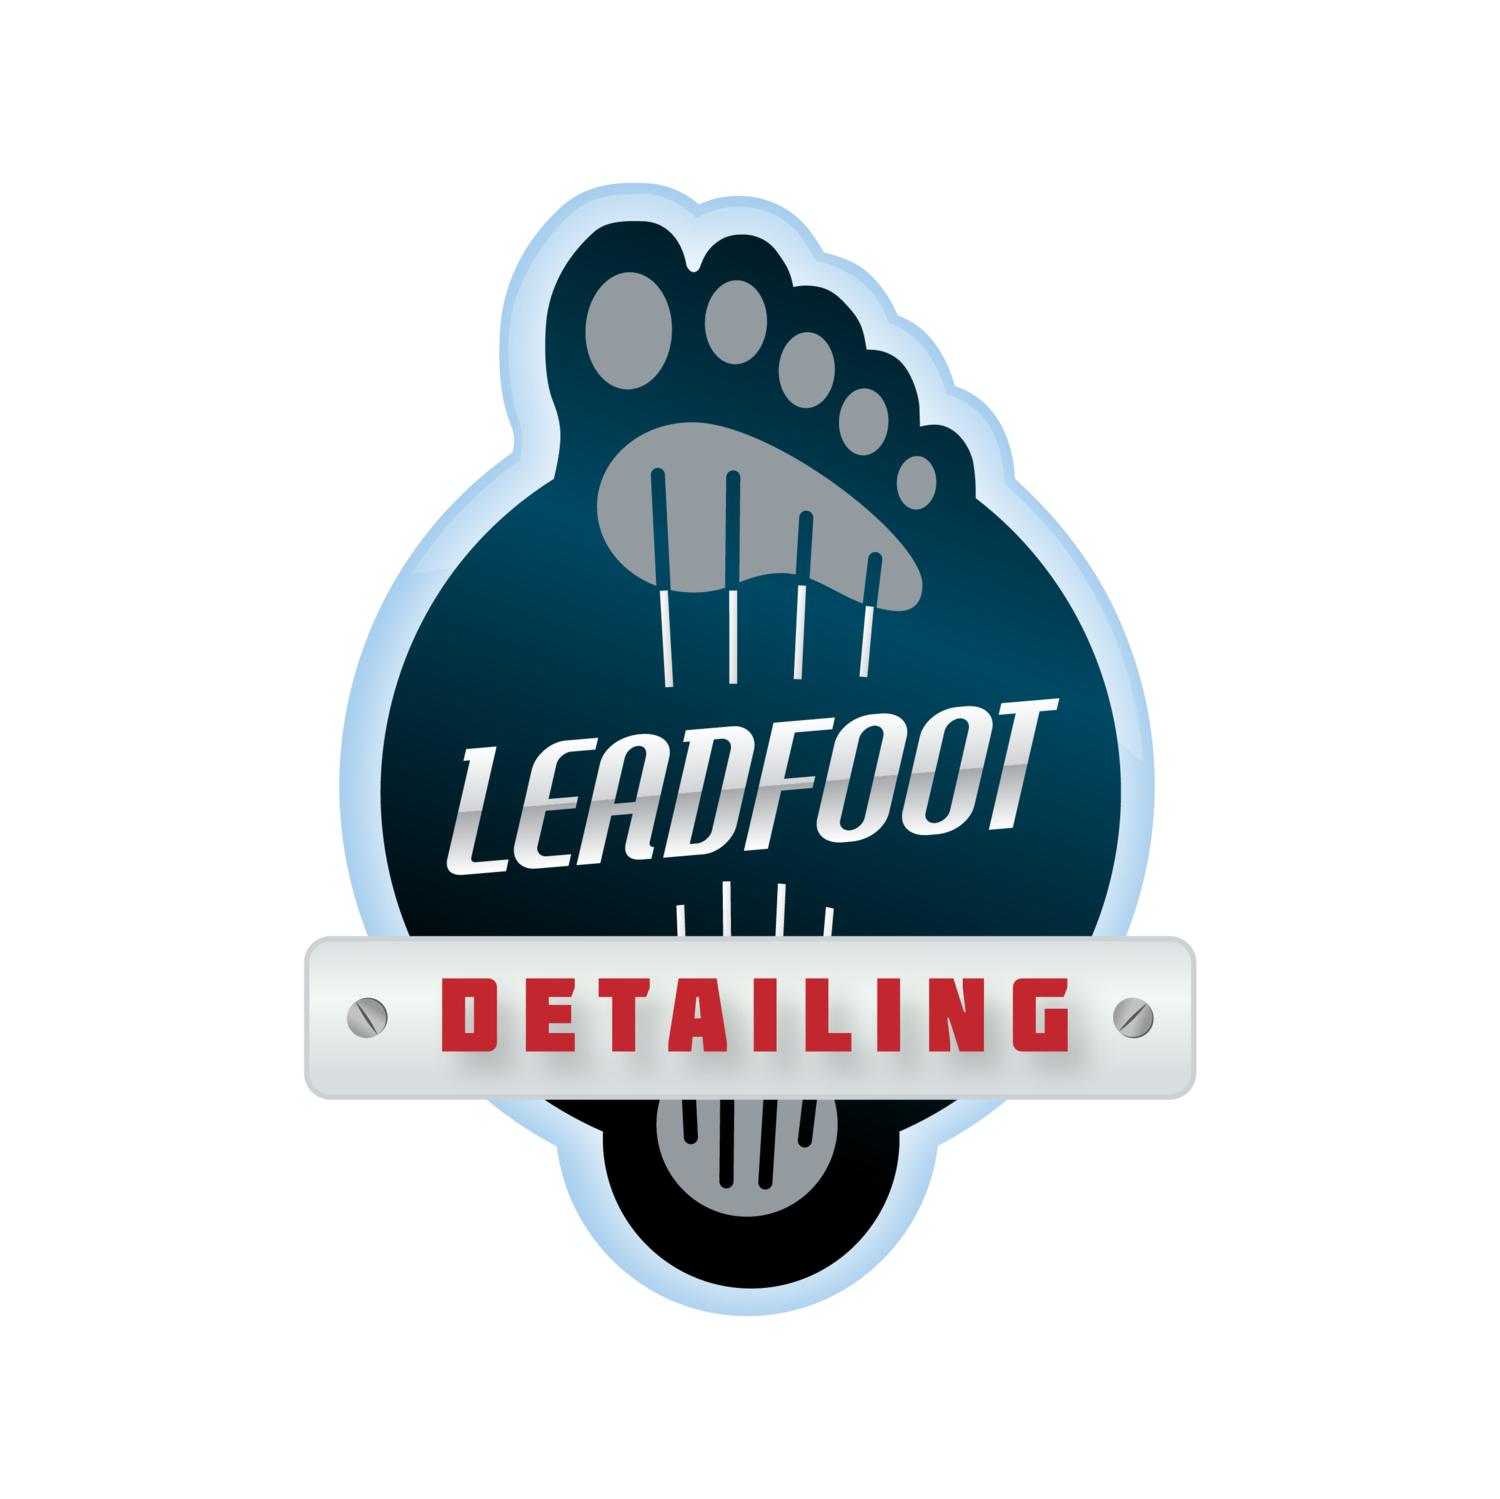 Leadfoot Detailing